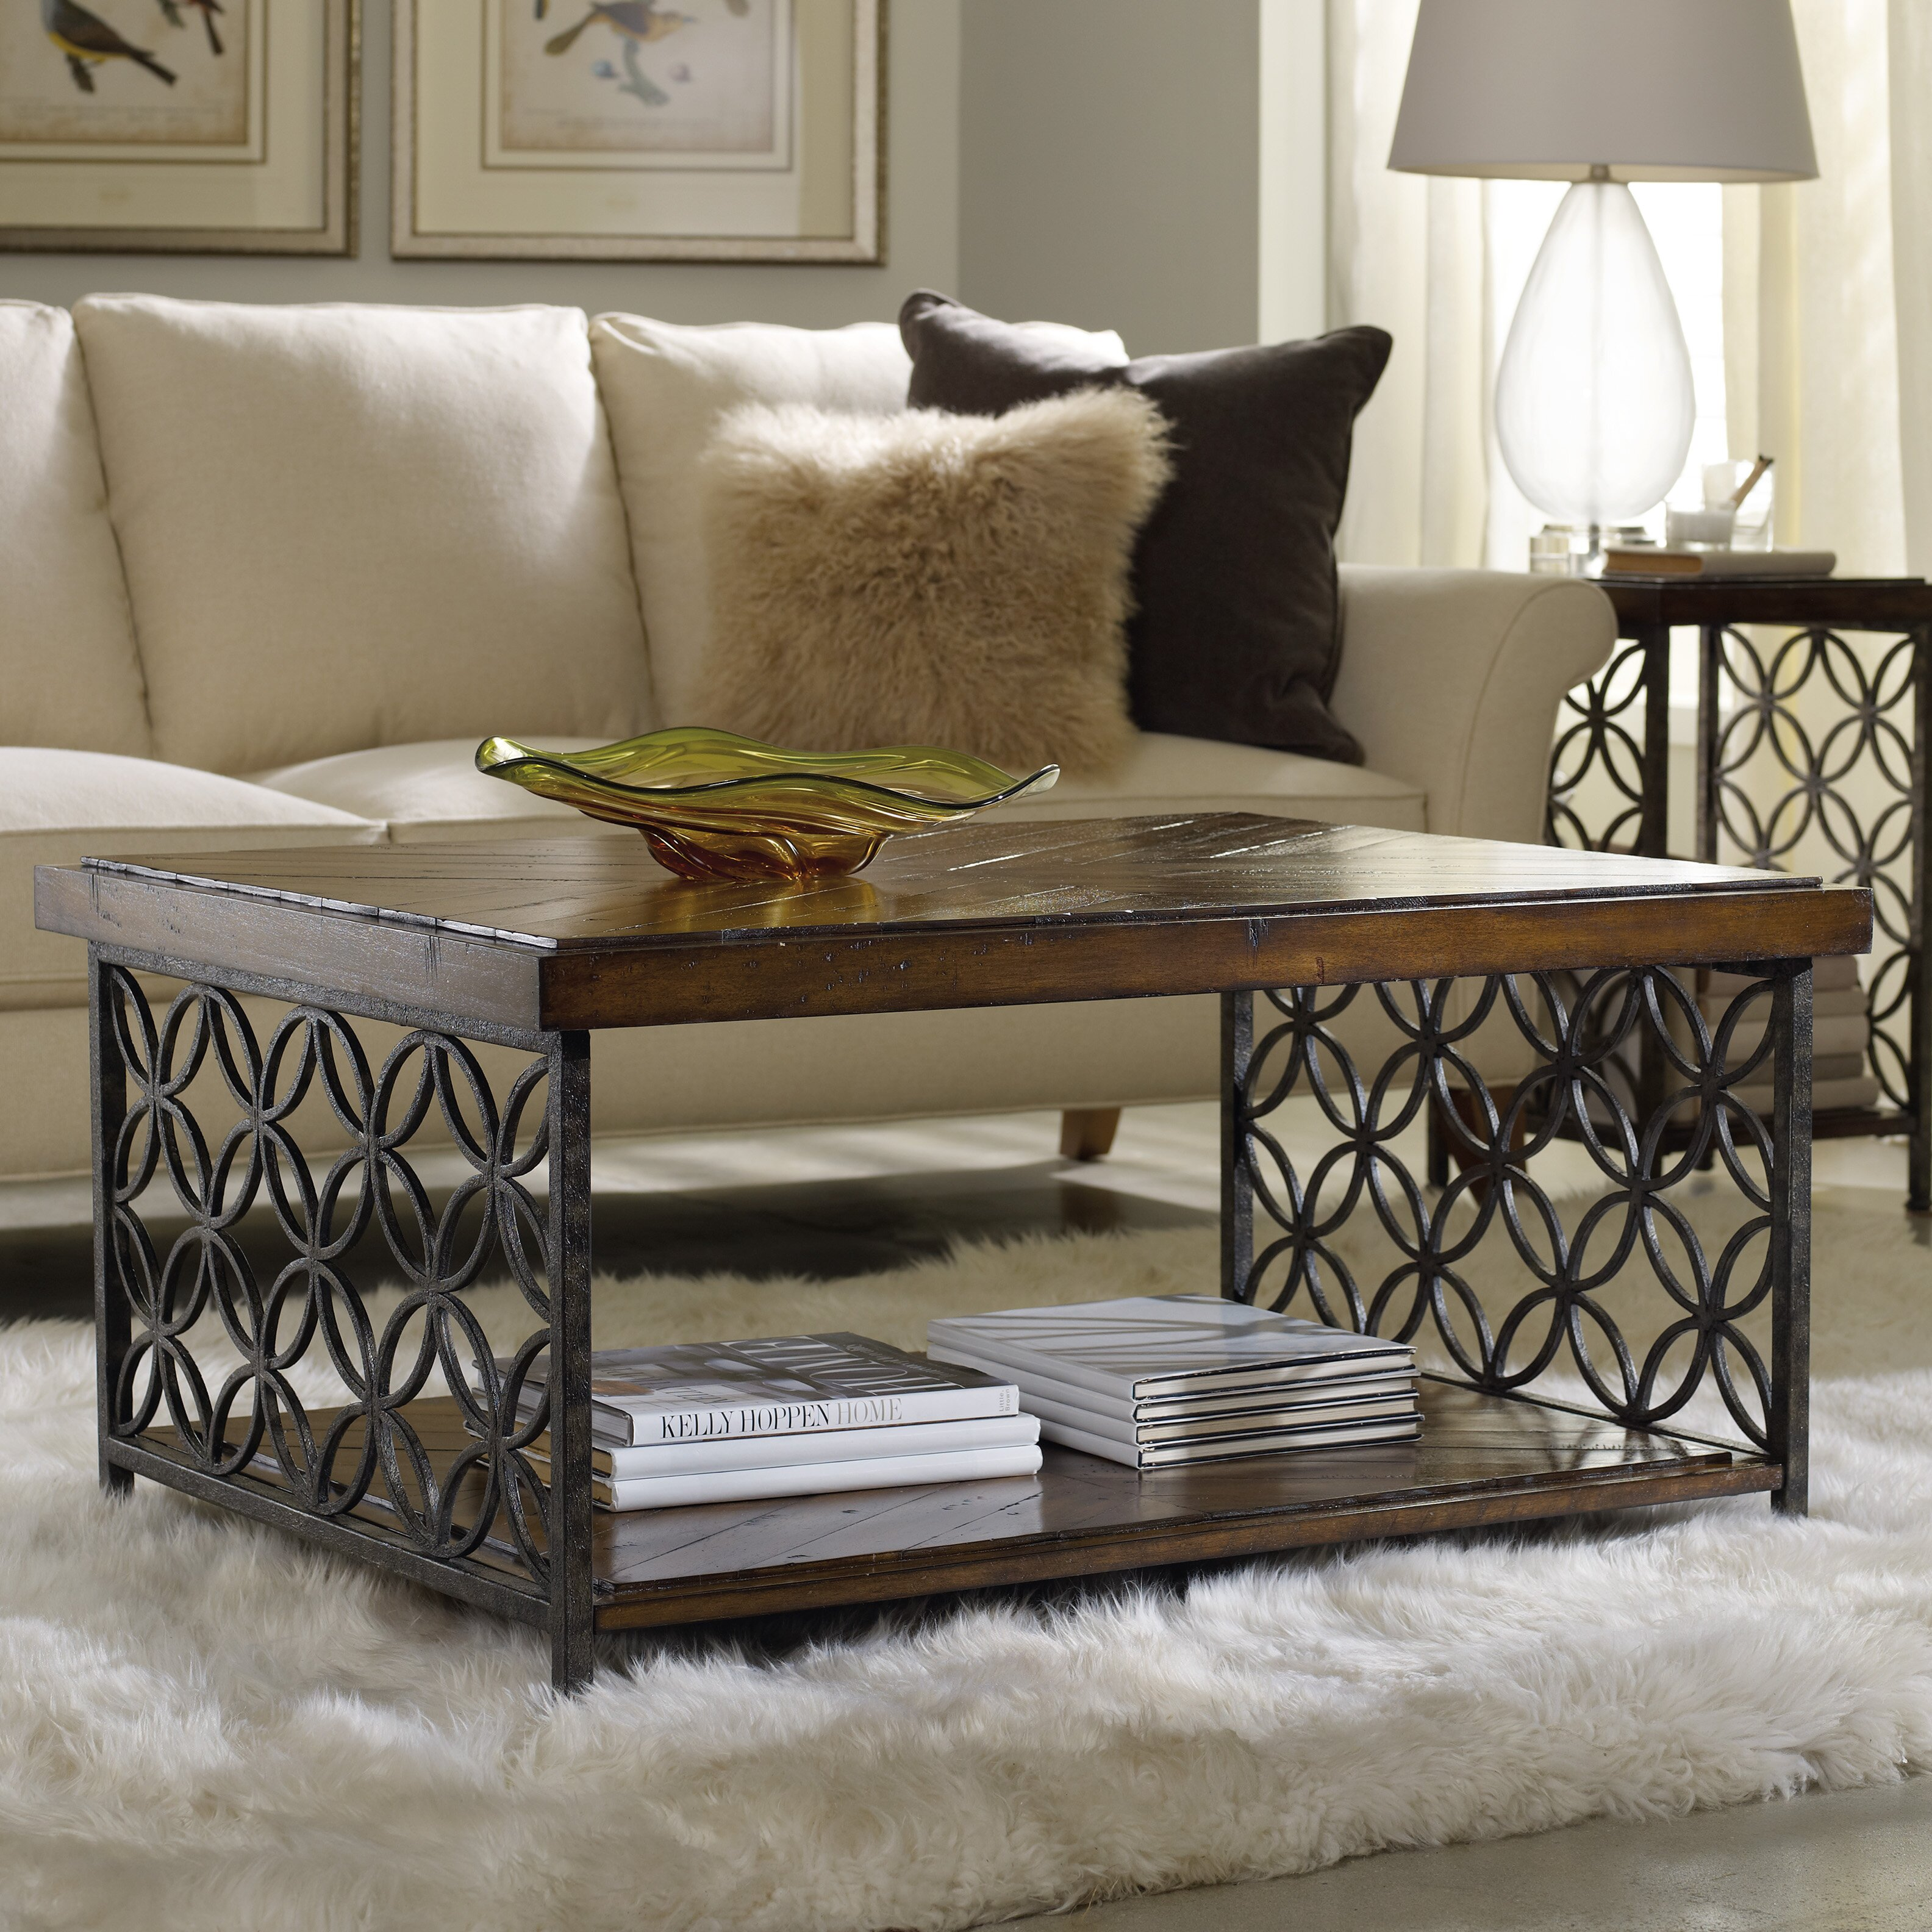 Lpd Furniture Accent White Coffee Table: Hooker Furniture Accents Coffee Table & Reviews